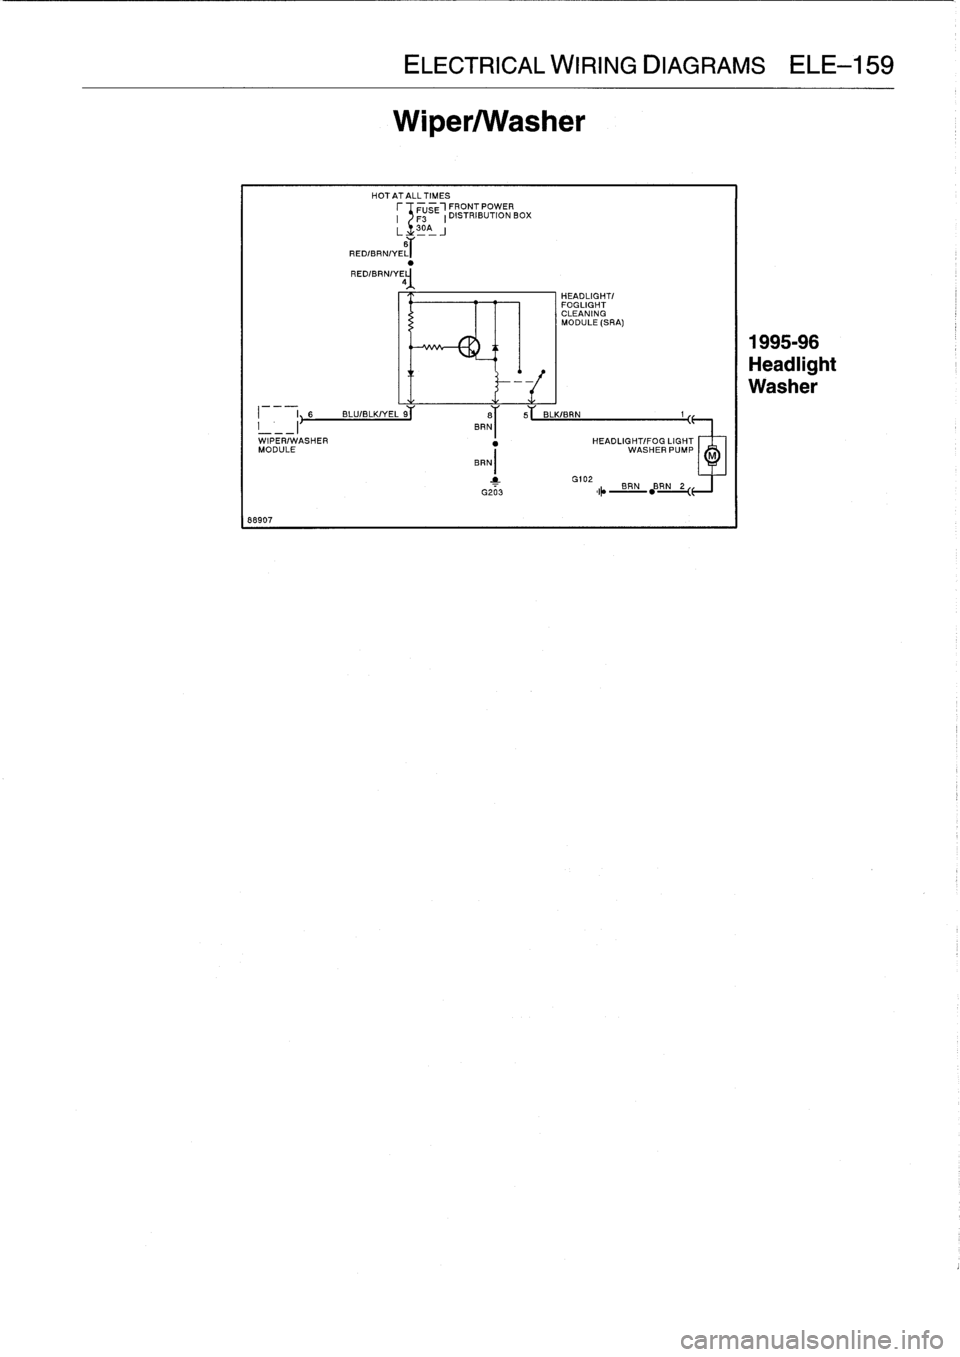 w960_2800 641 bmw m3 1992 e36 workshop manual BMW Stereo Wiring Diagram at virtualis.co